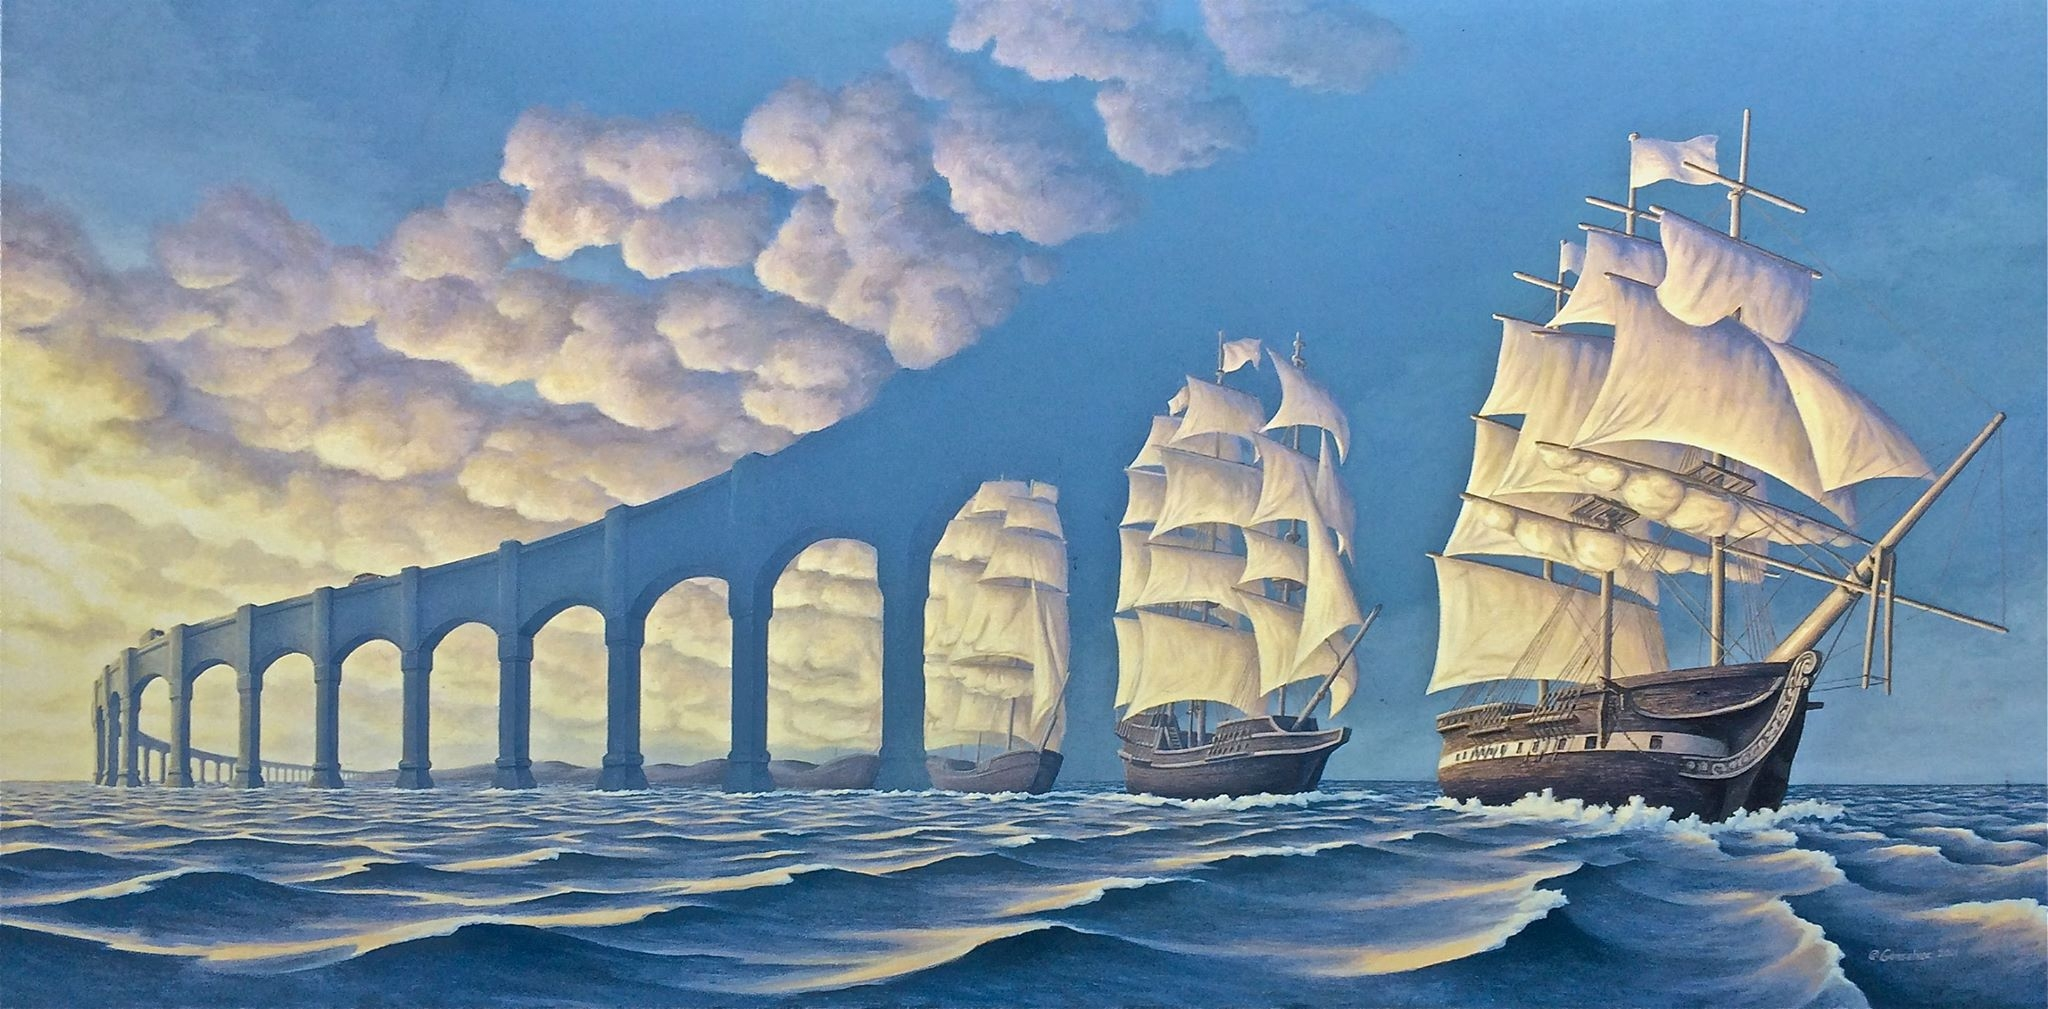 The Sun Sets Sail by Rob Gonsalves